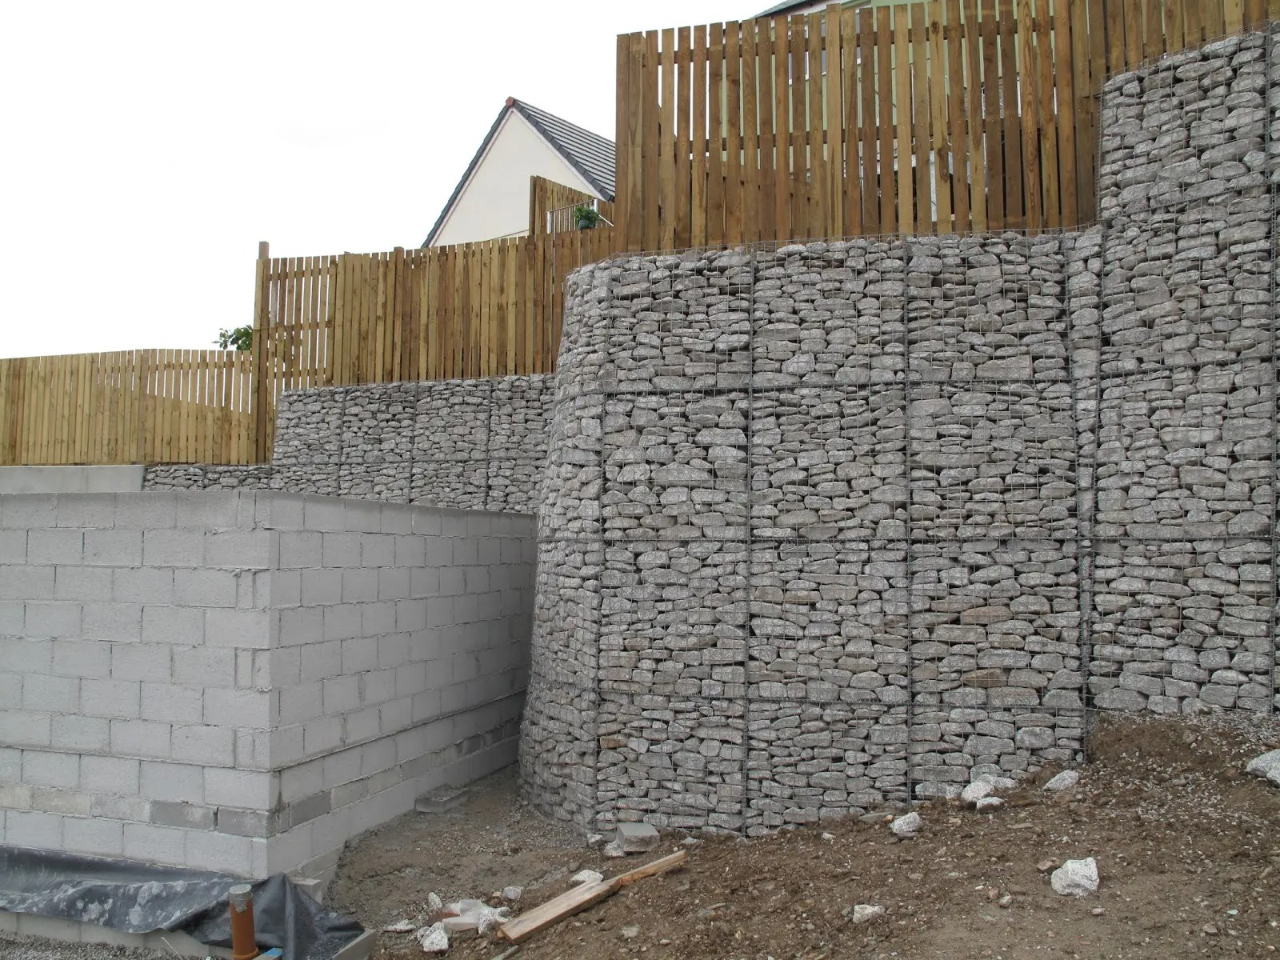 stone wall with wooden fence and building